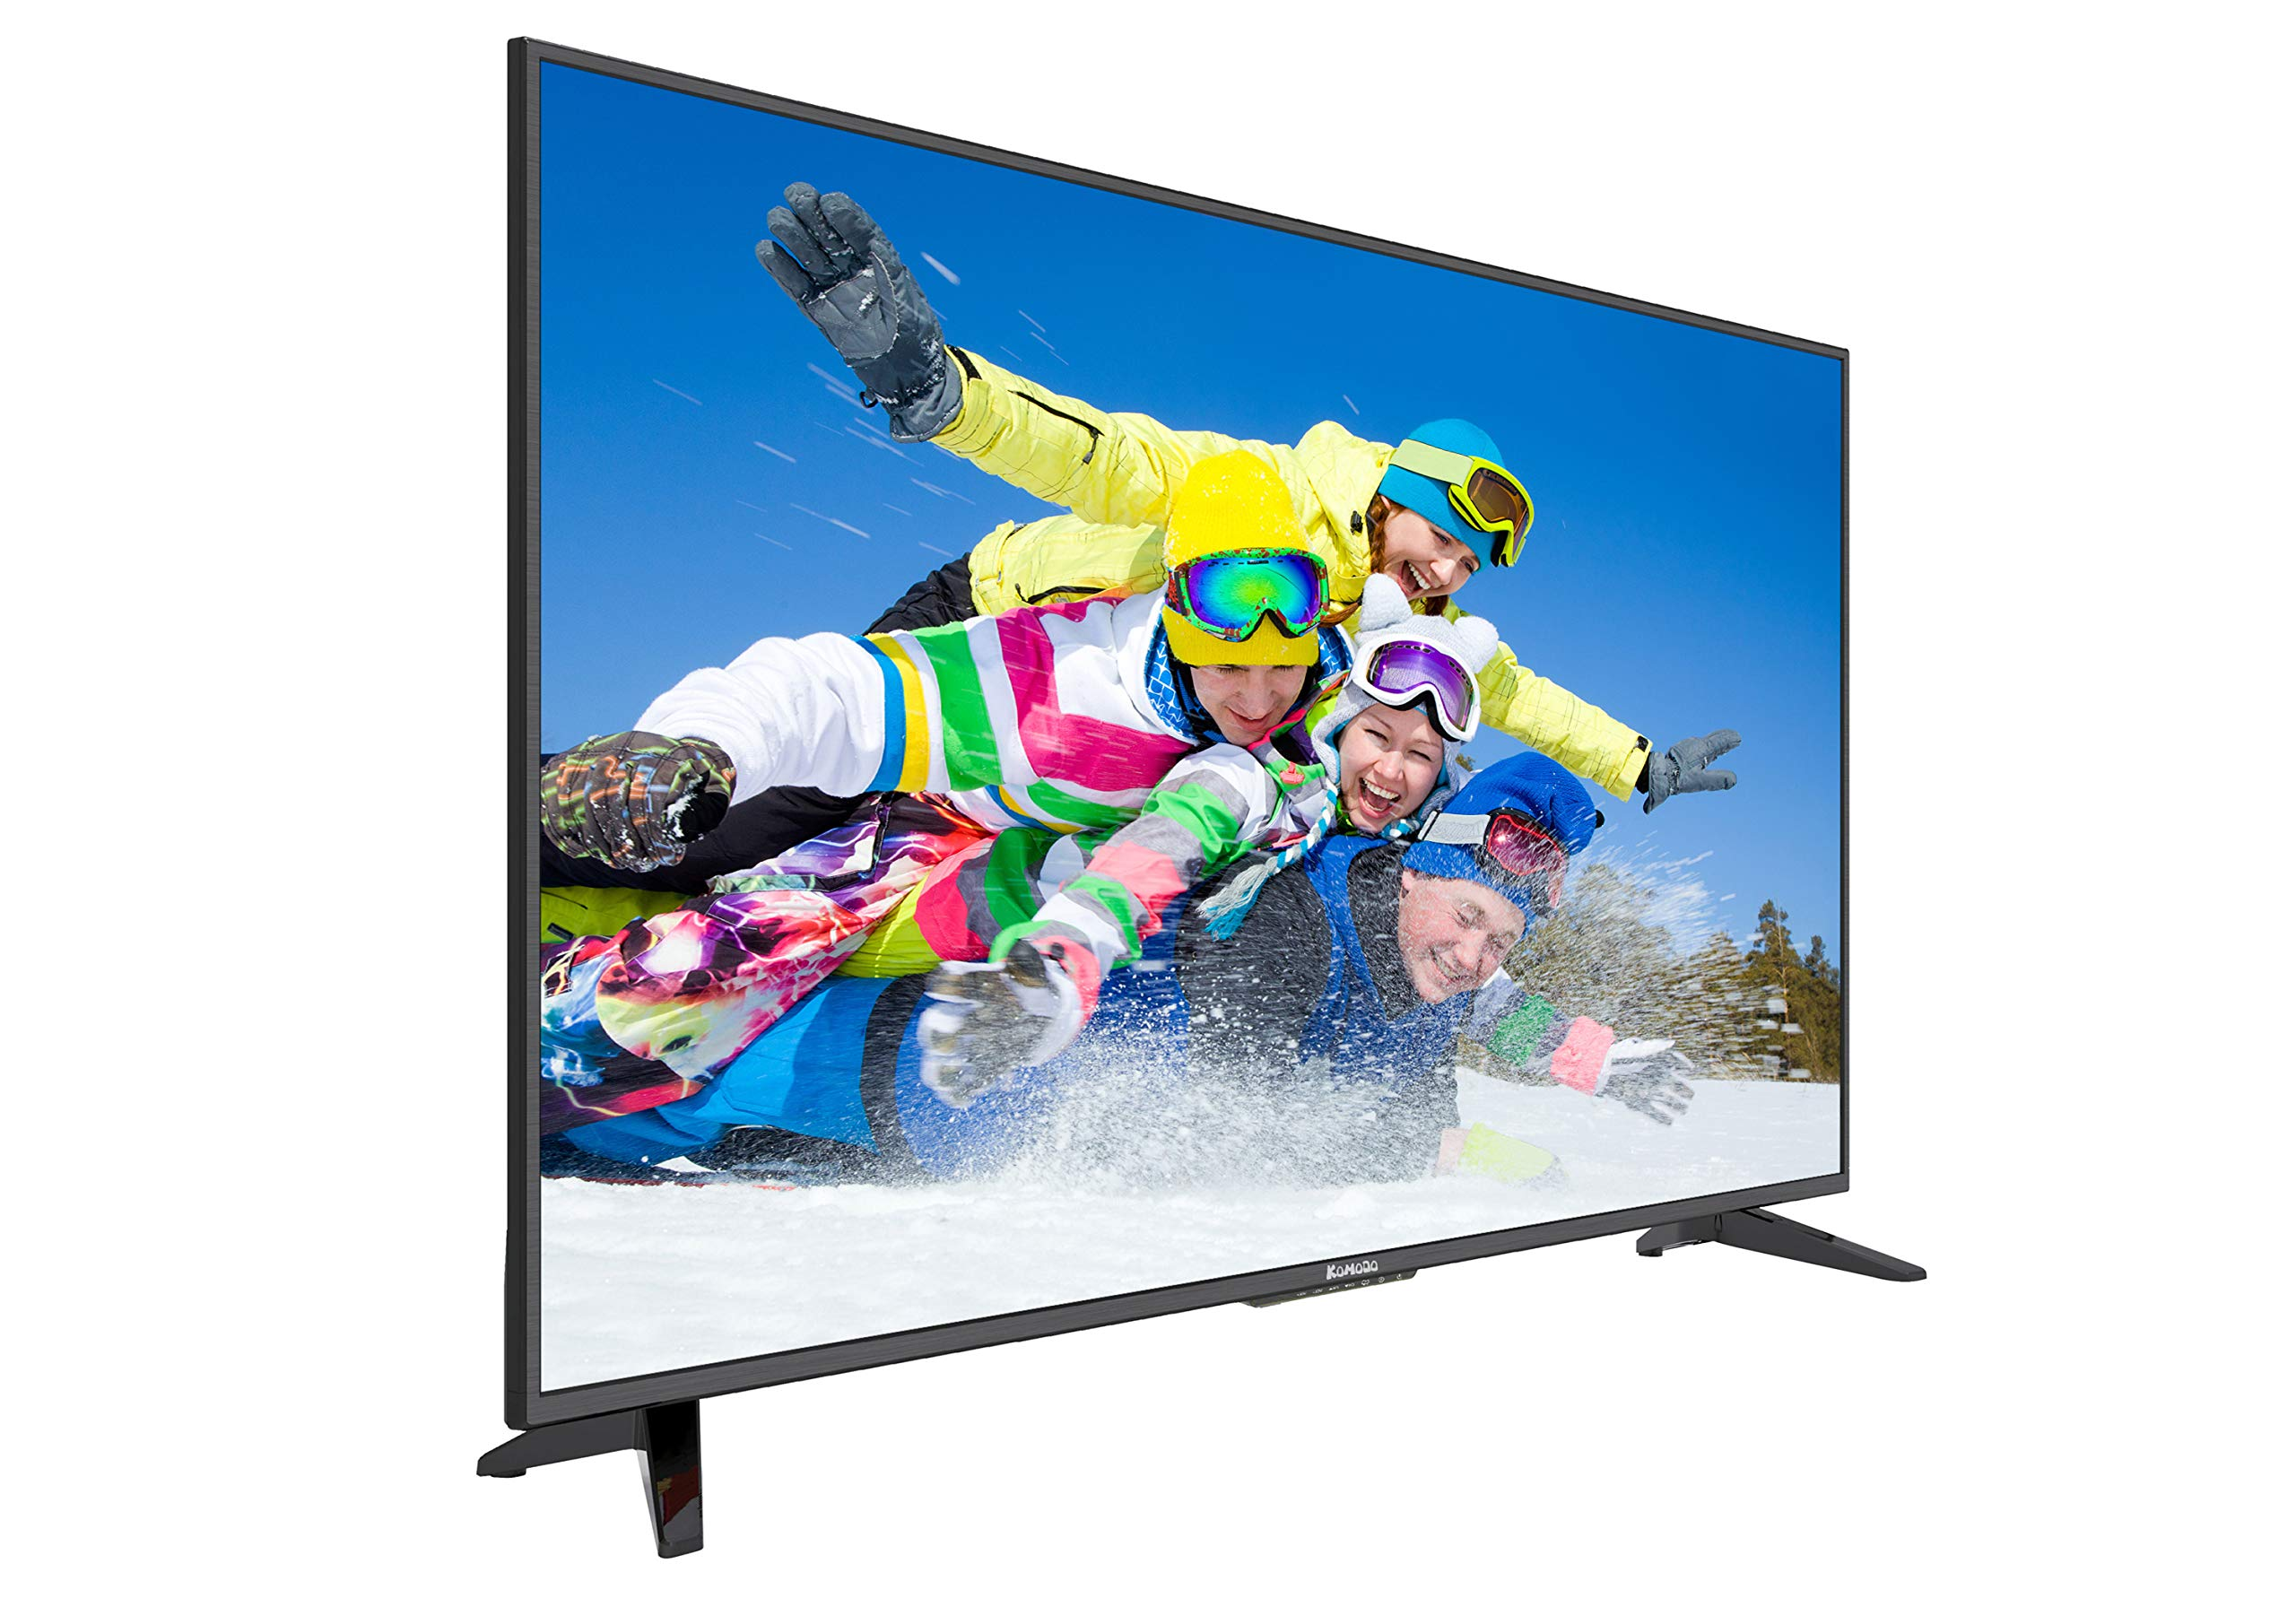 Komodo by Sceptre KU515 50'' 4K UHD Ultra Slim LED TV 3840x2160 Memc 120, Metal Black 2019 by Komodo by Sceptre